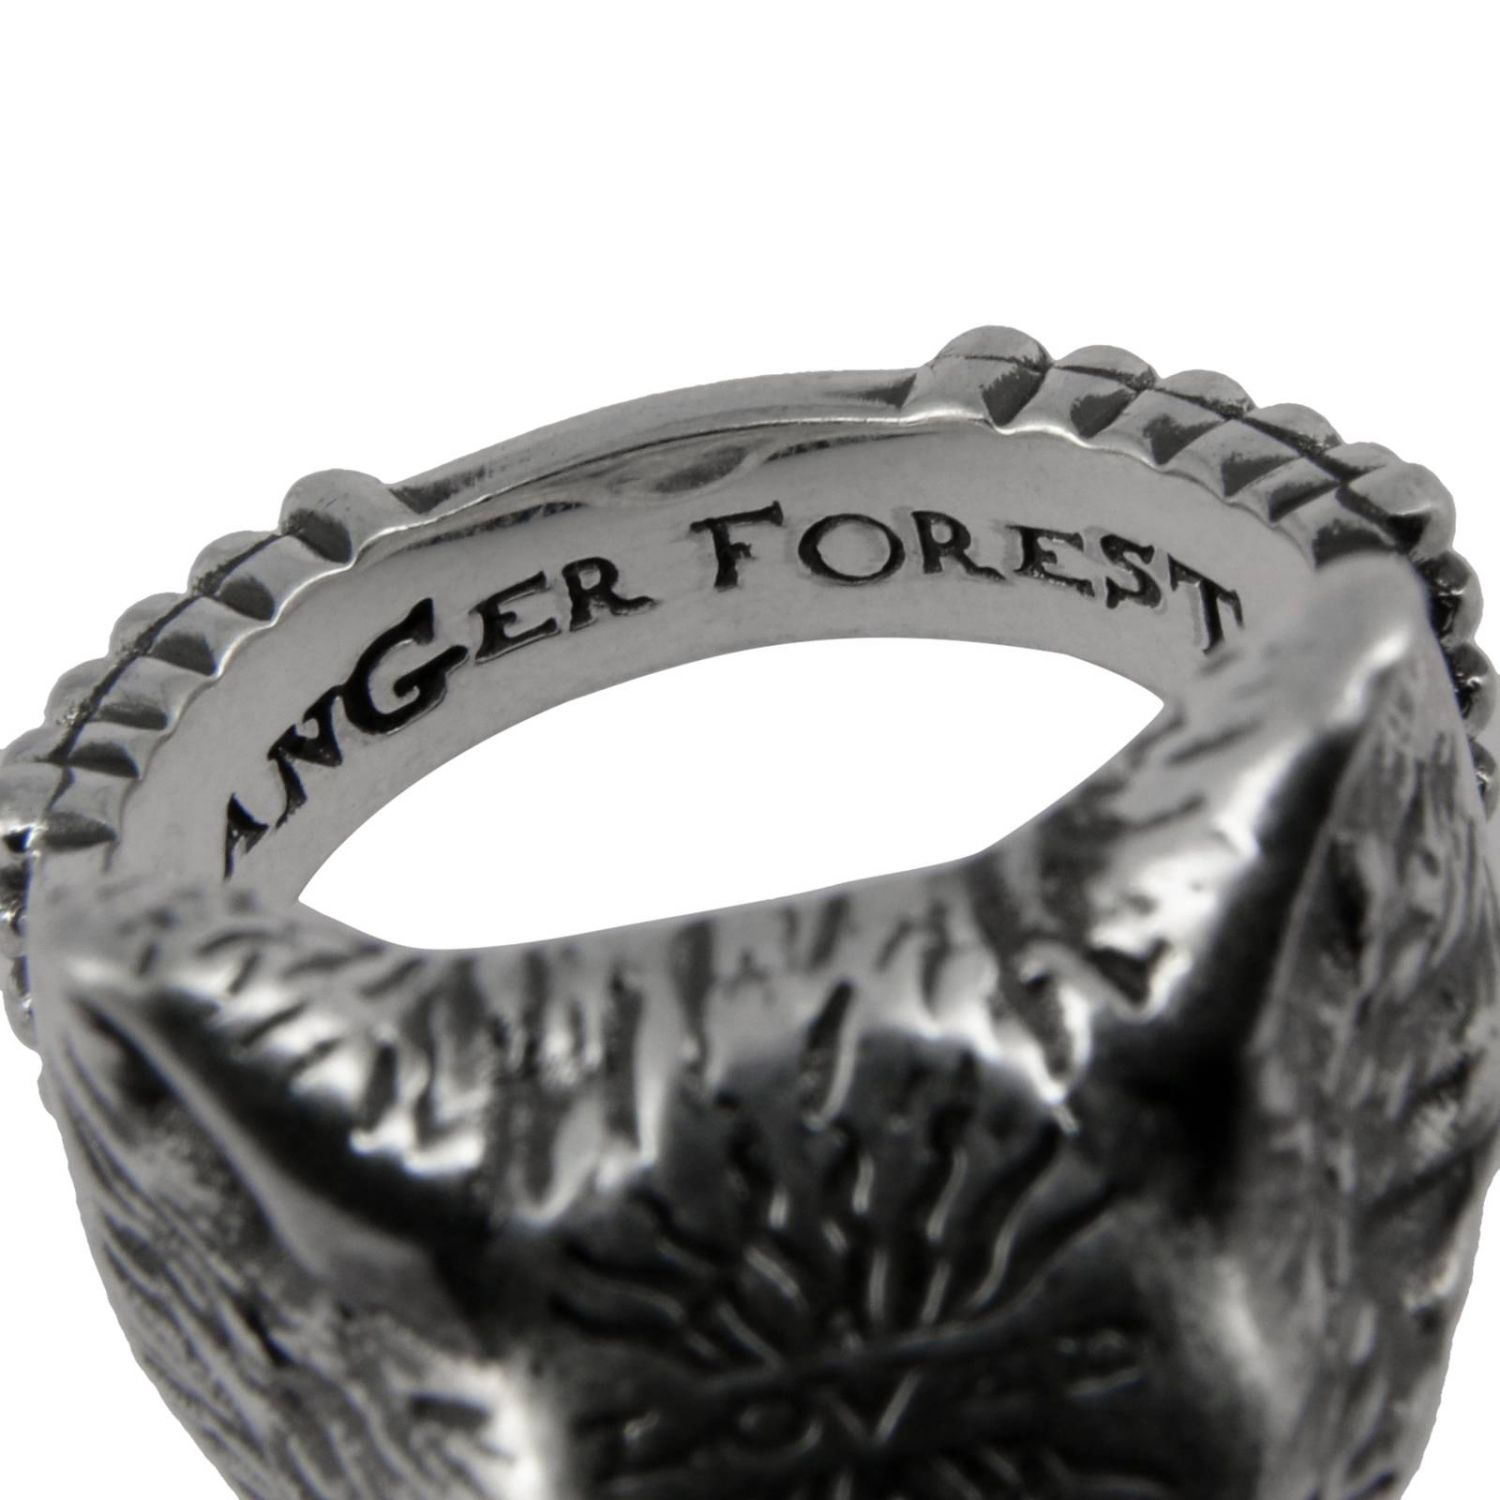 Anello Anger Forest Wolf s in argento sterling con finitura aureco argento 3